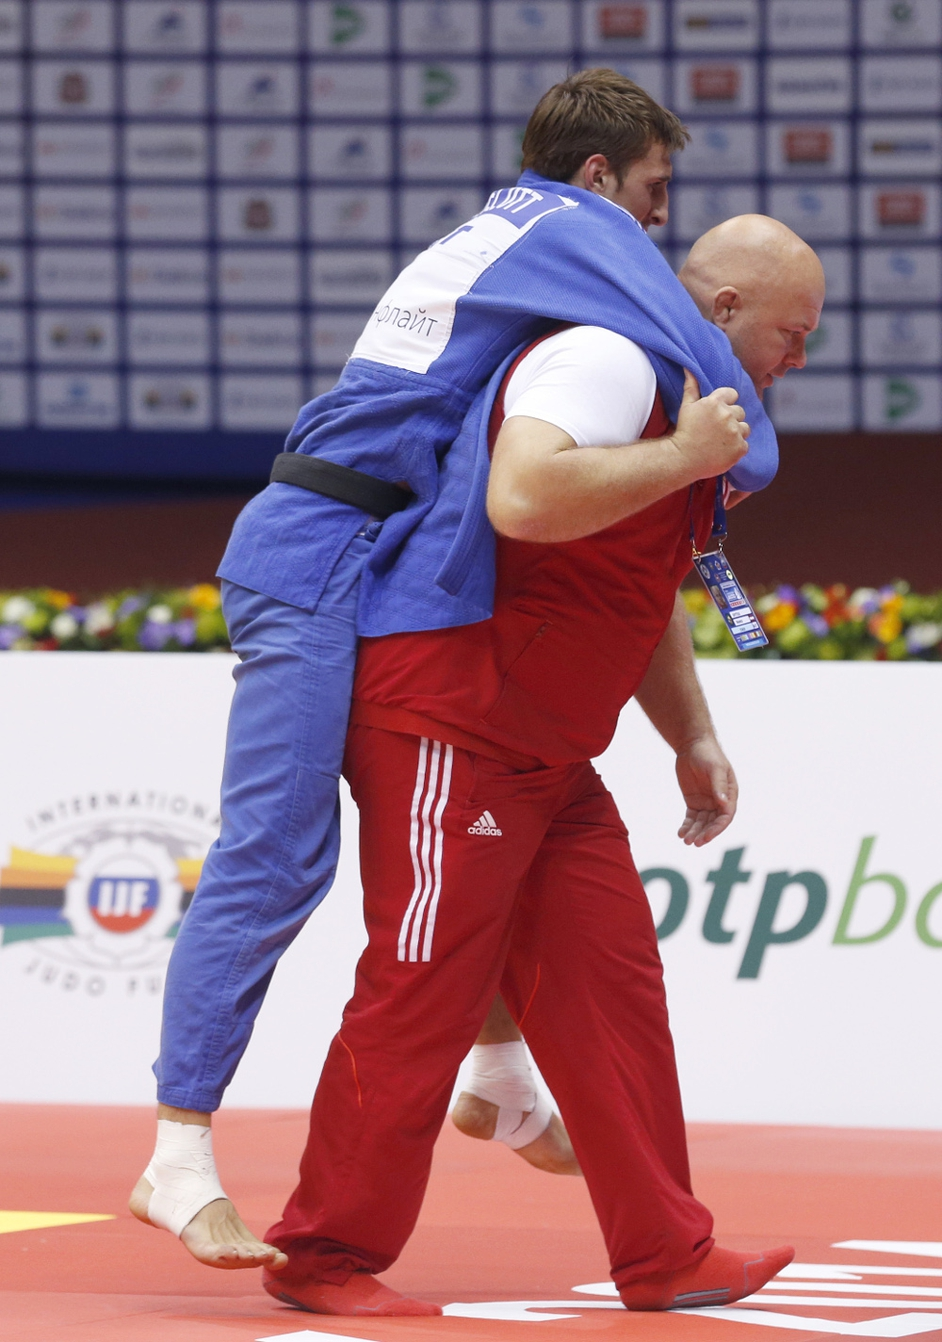 An Austrian team doctor carries judoka Marcel Ott following an injury at the Judo World Championships in Chelyabinsk, Russia